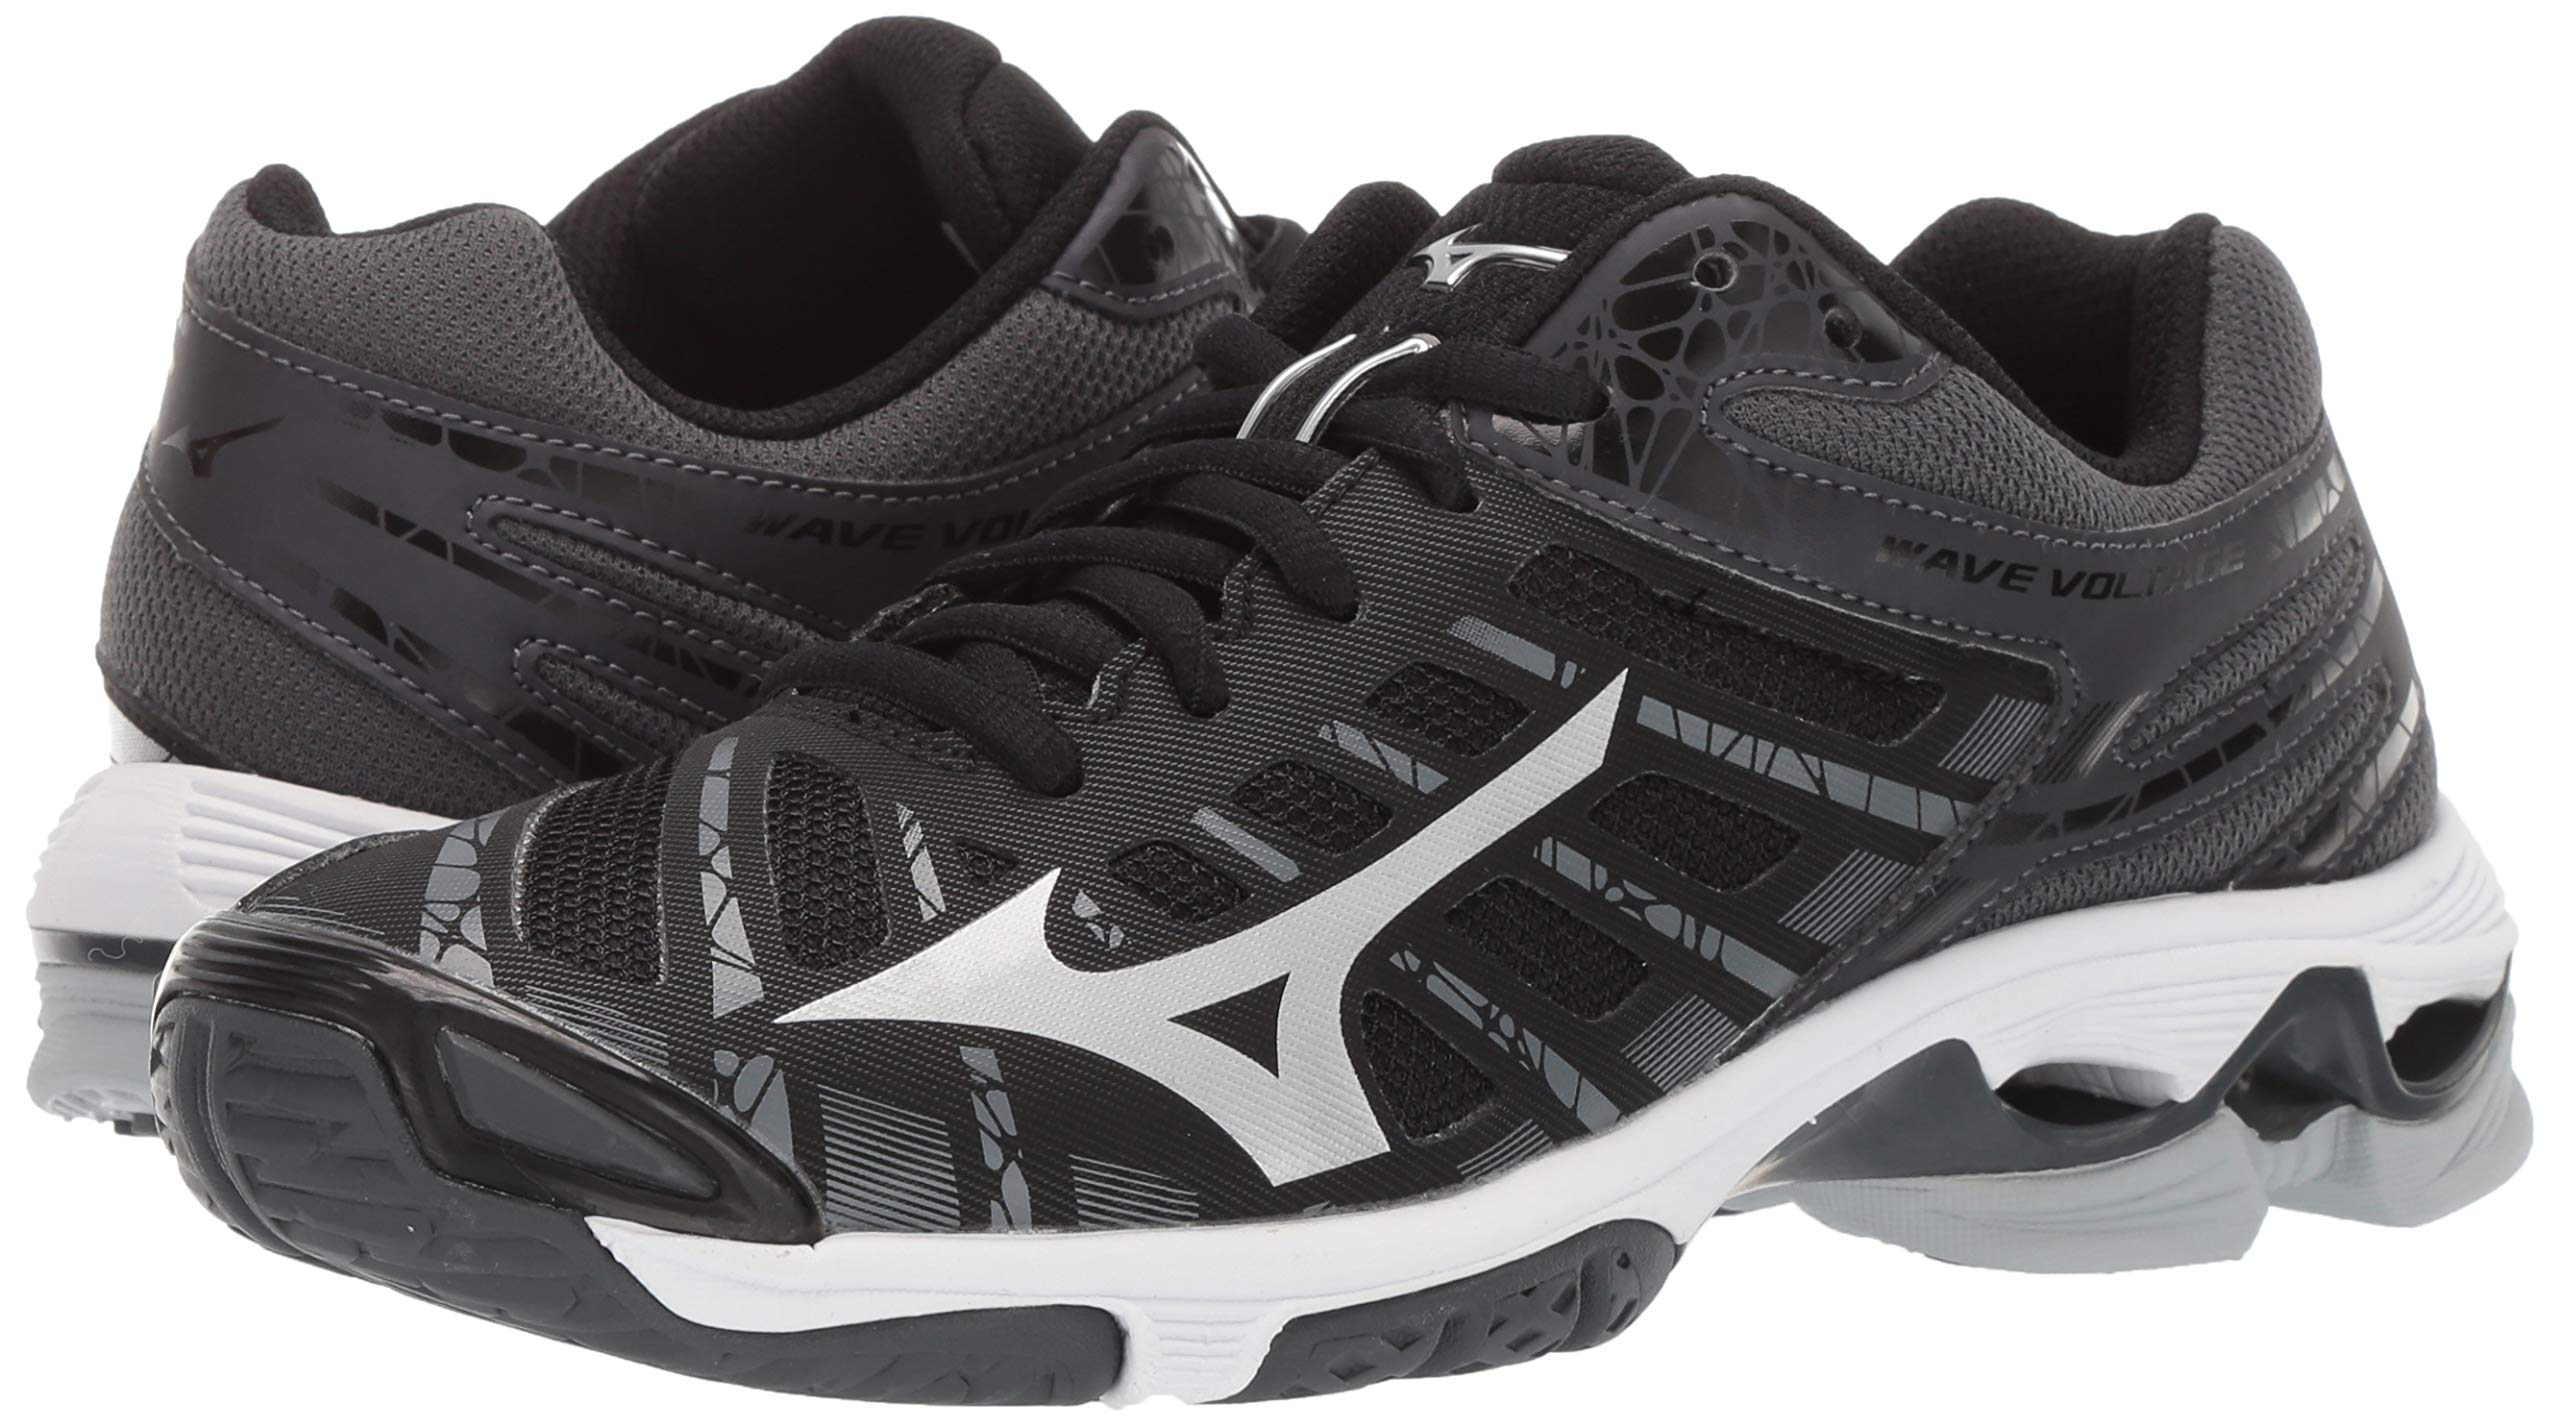 mizuno volleyball shoes hawaii usa women's